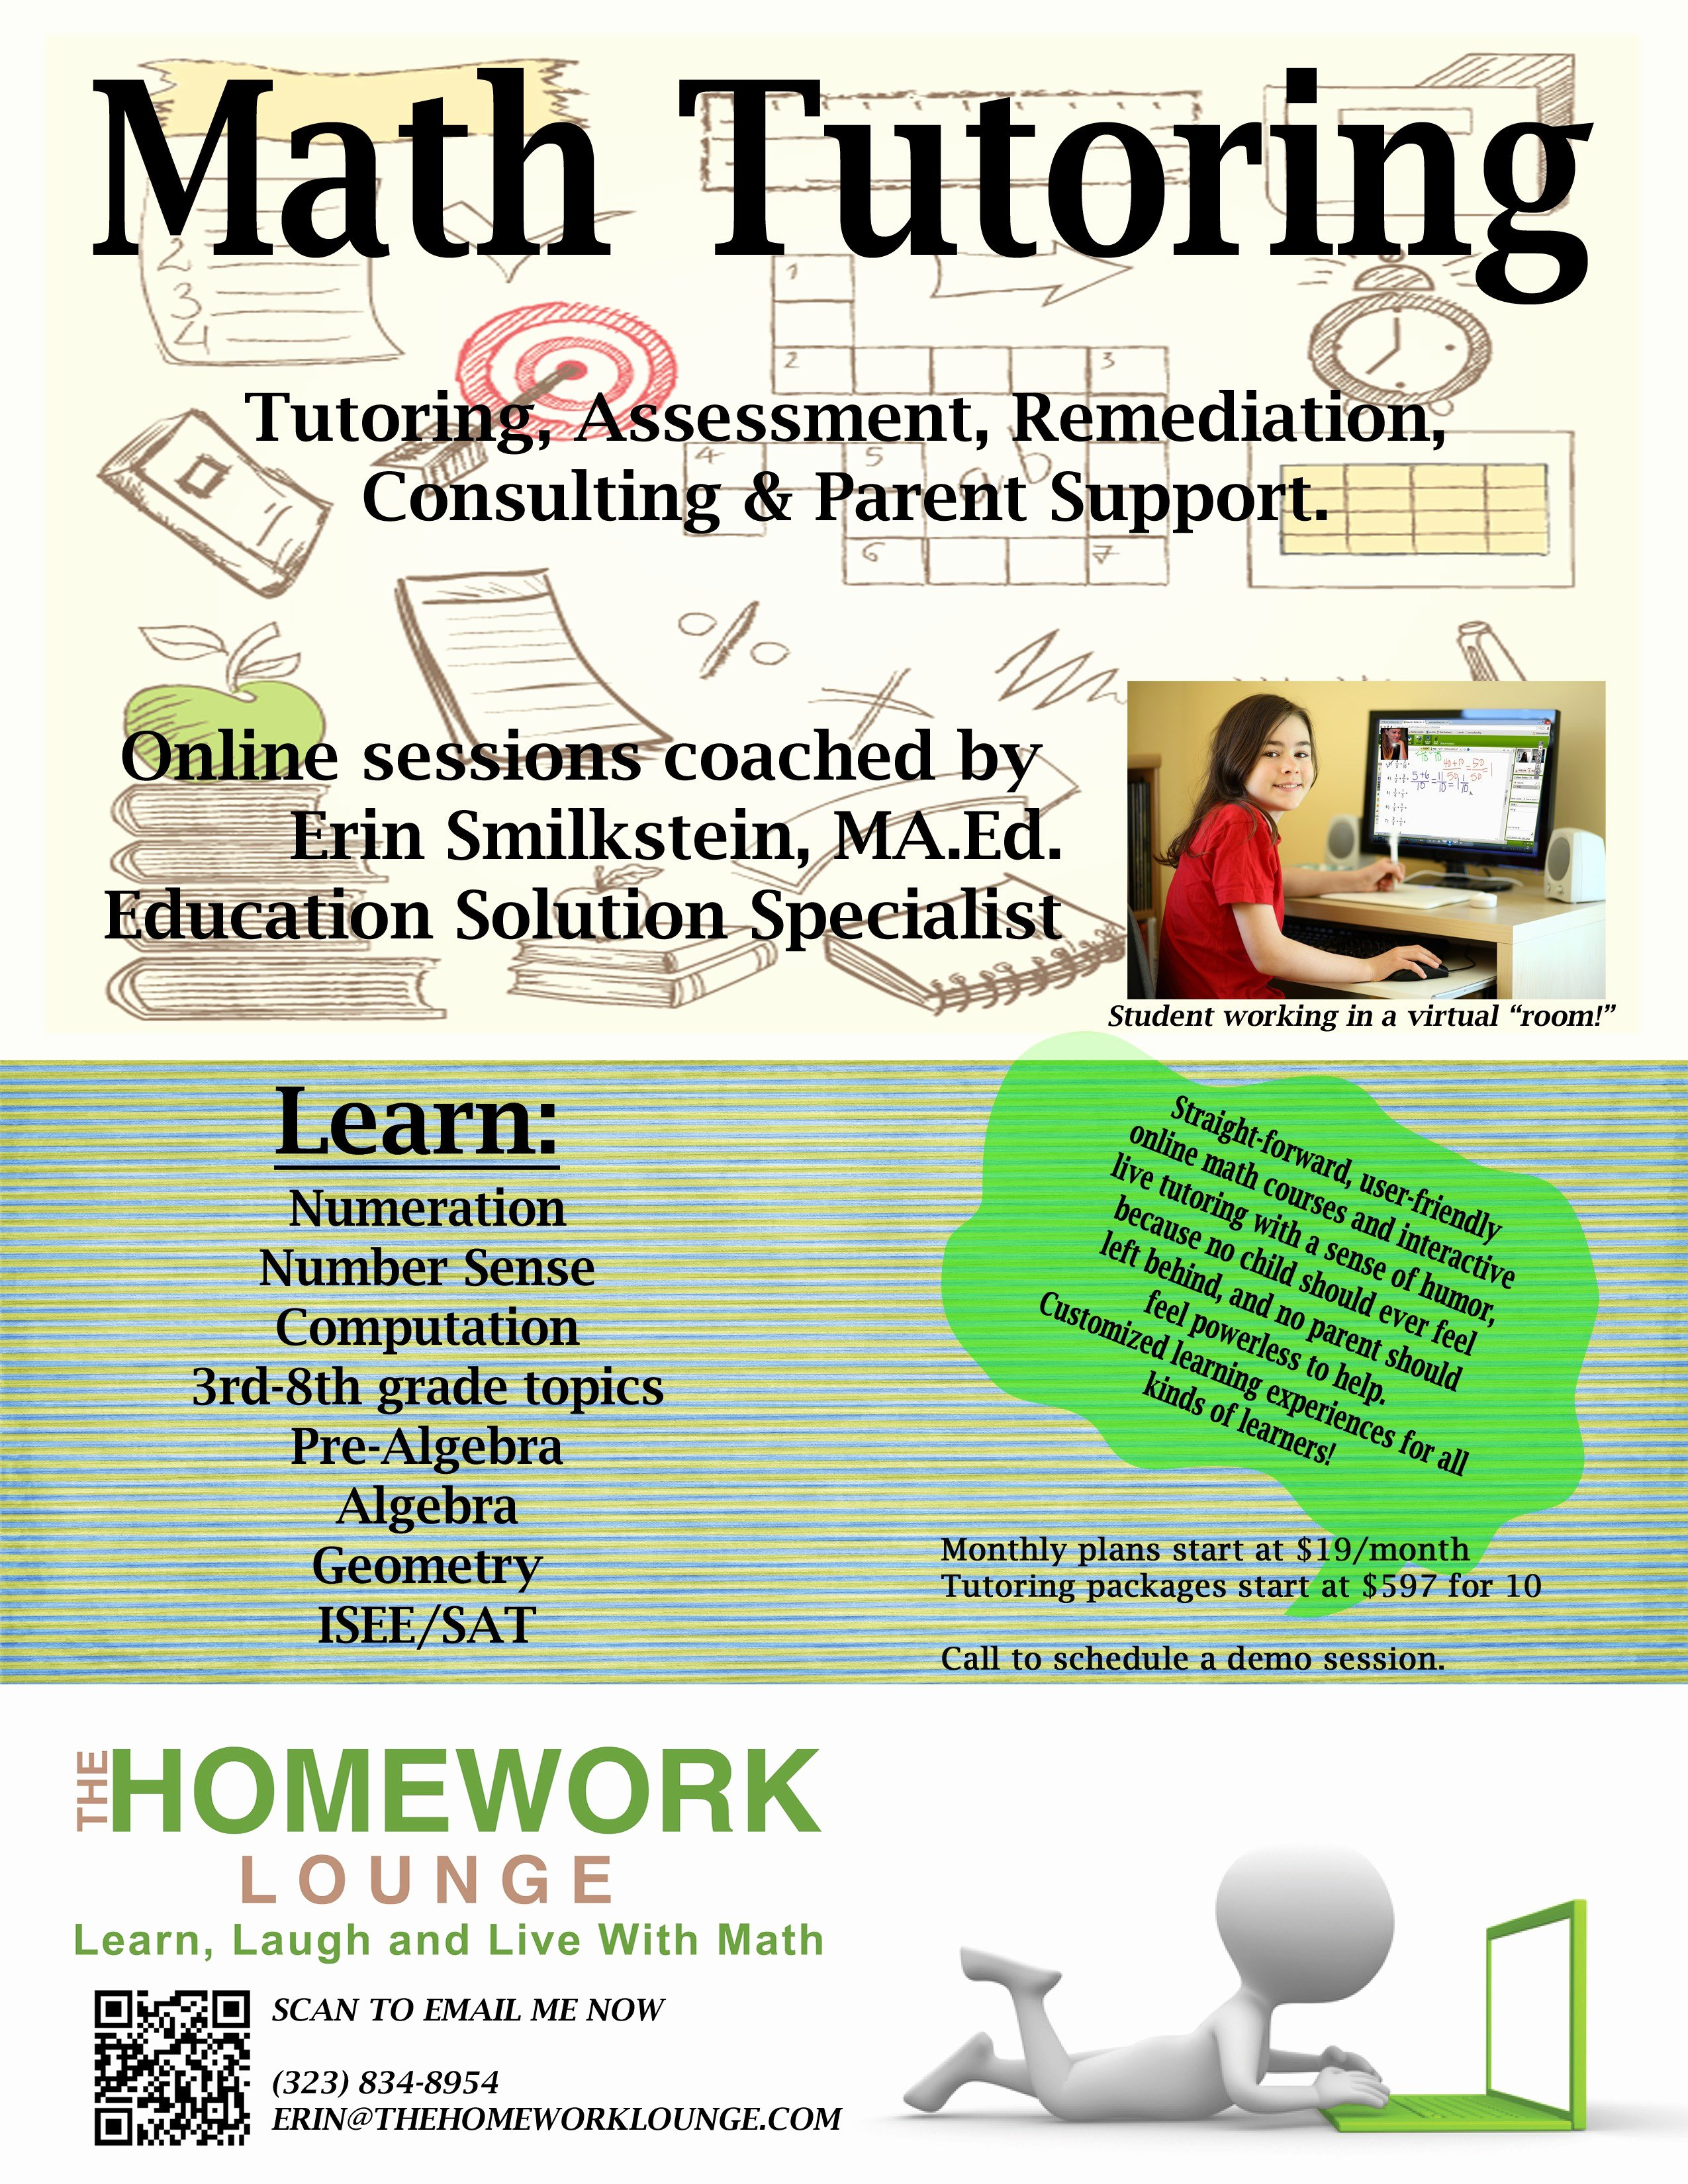 Tutoring Flyer Template Free Lovely Math Tutor Flyer Templa Cool School Flyers Fly